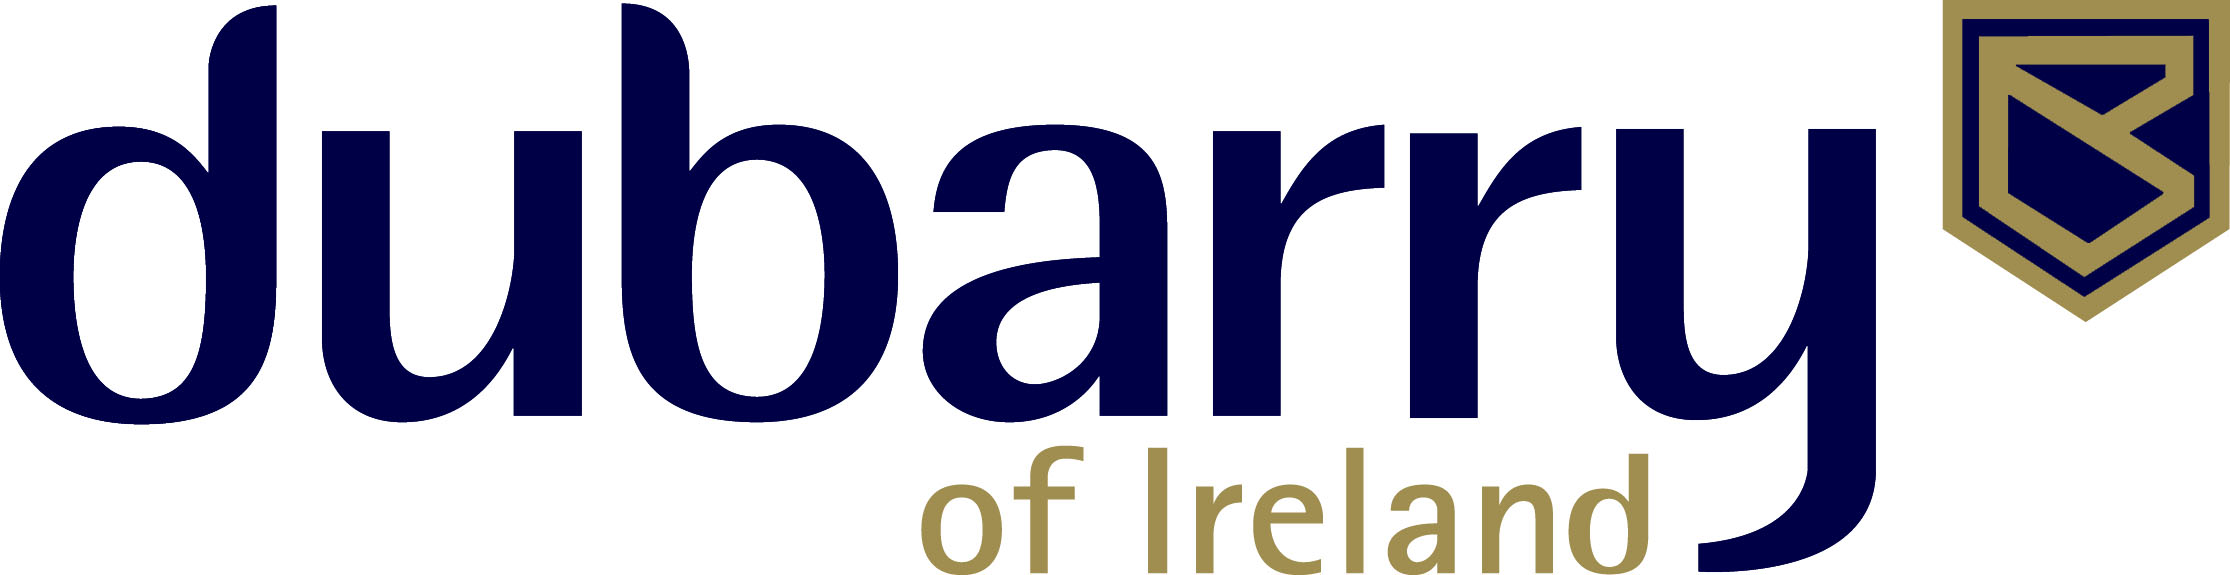 Dubarry Of Ireland Logo